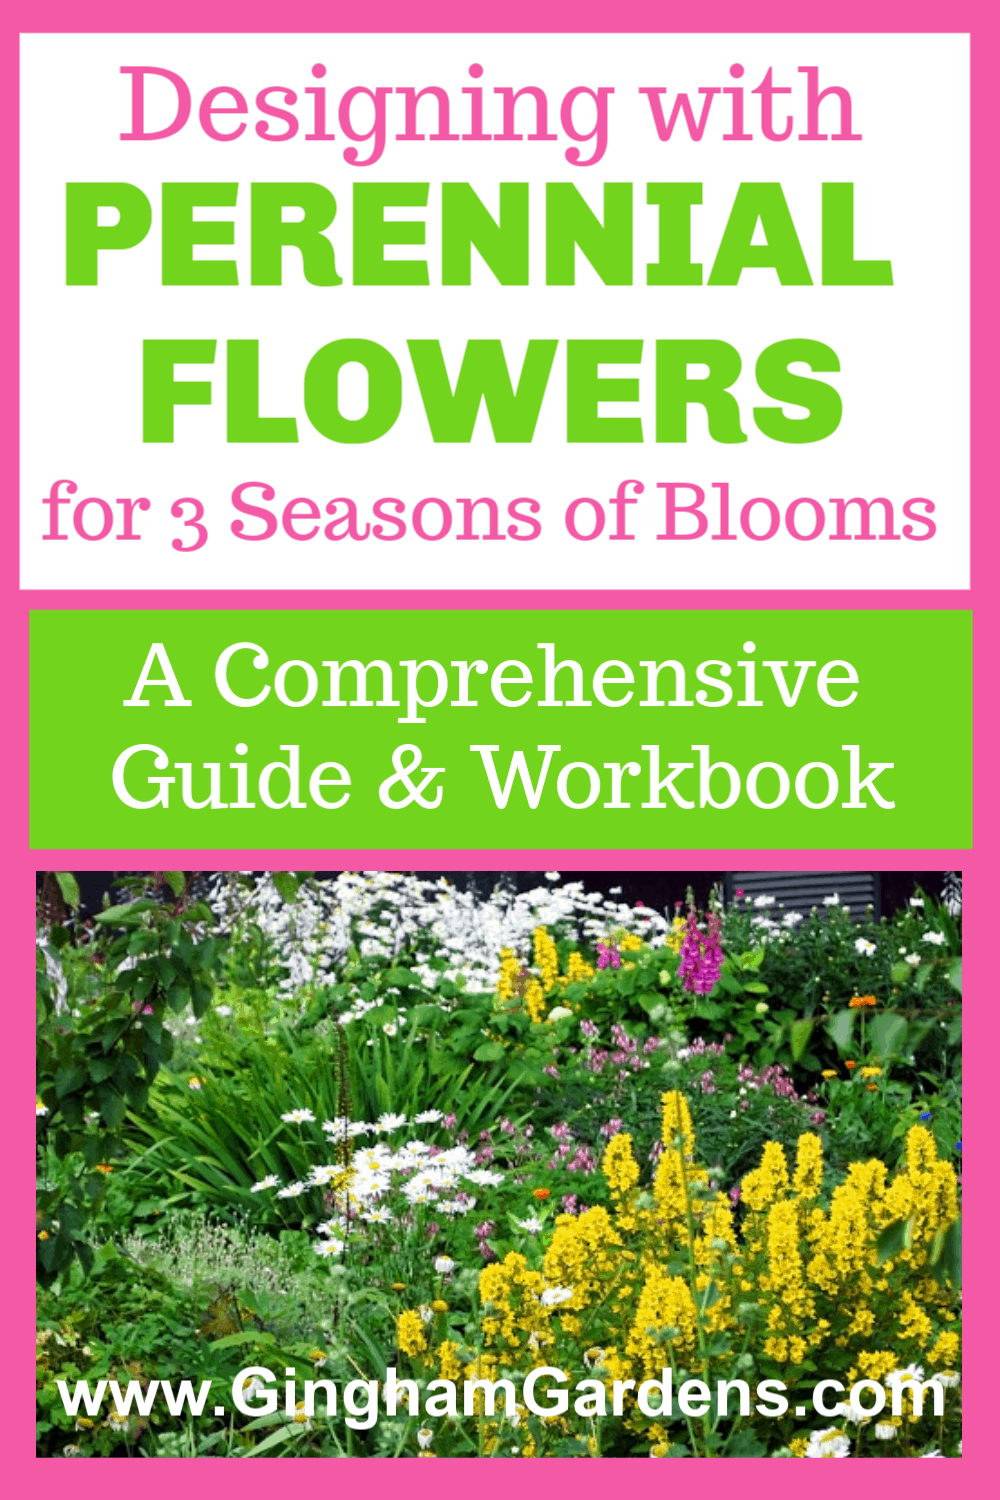 Image of a flower garden with text overlay Designing with Perennial Flowers for 3 Seasons of Blooms